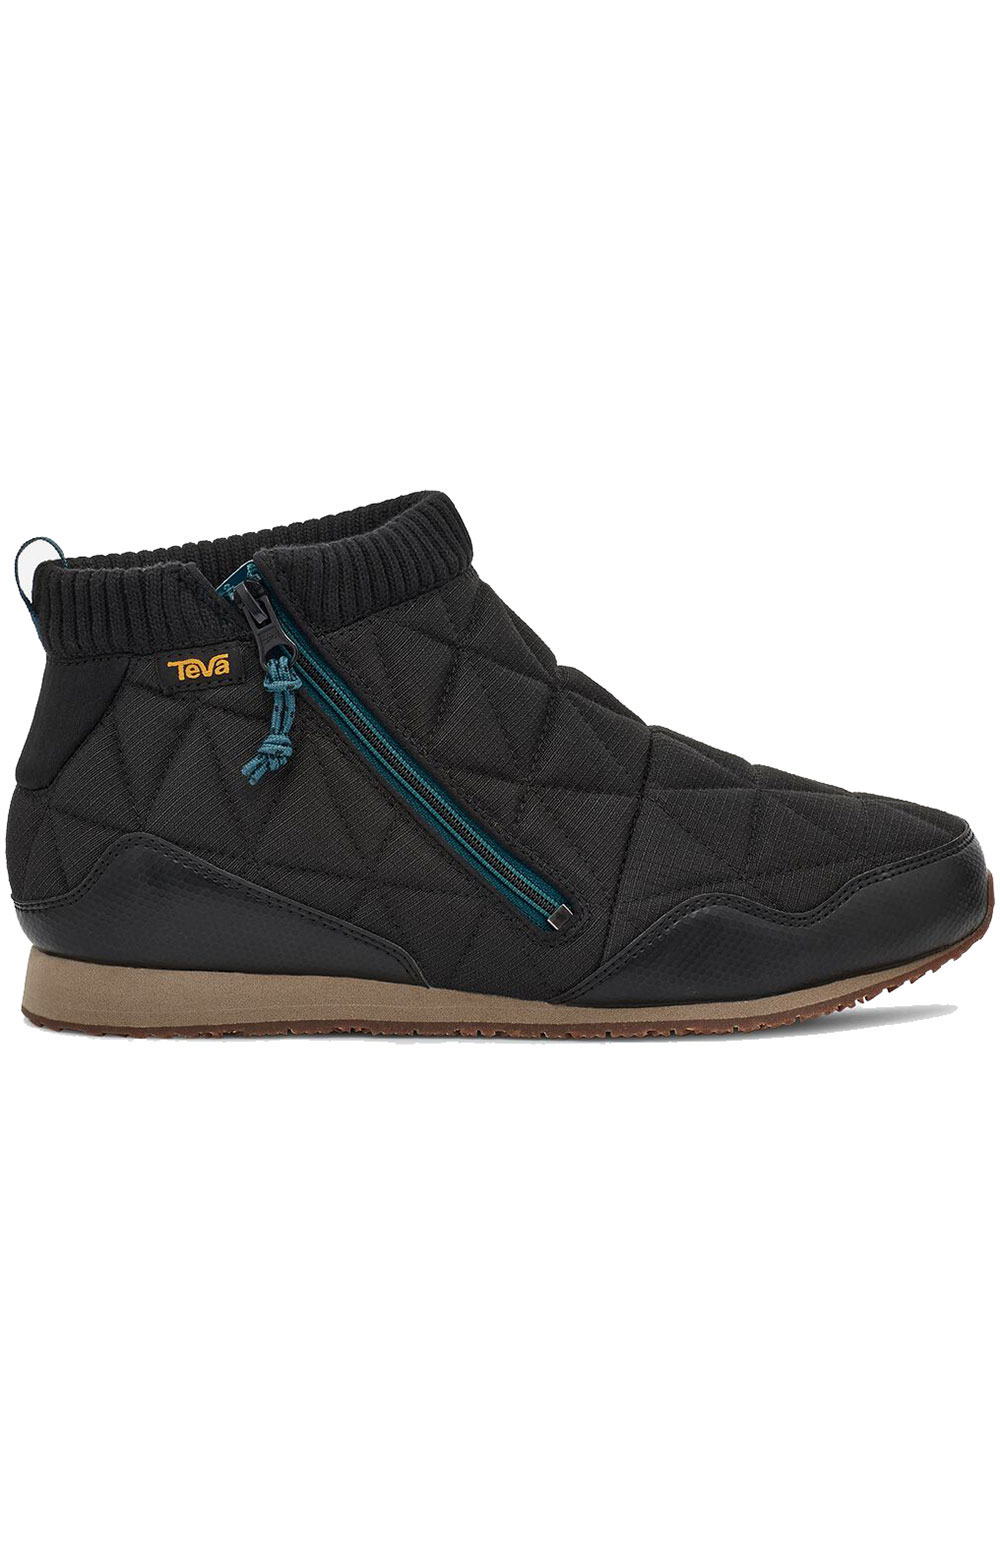 (1125310) ReEMBER MID Shoes - Black